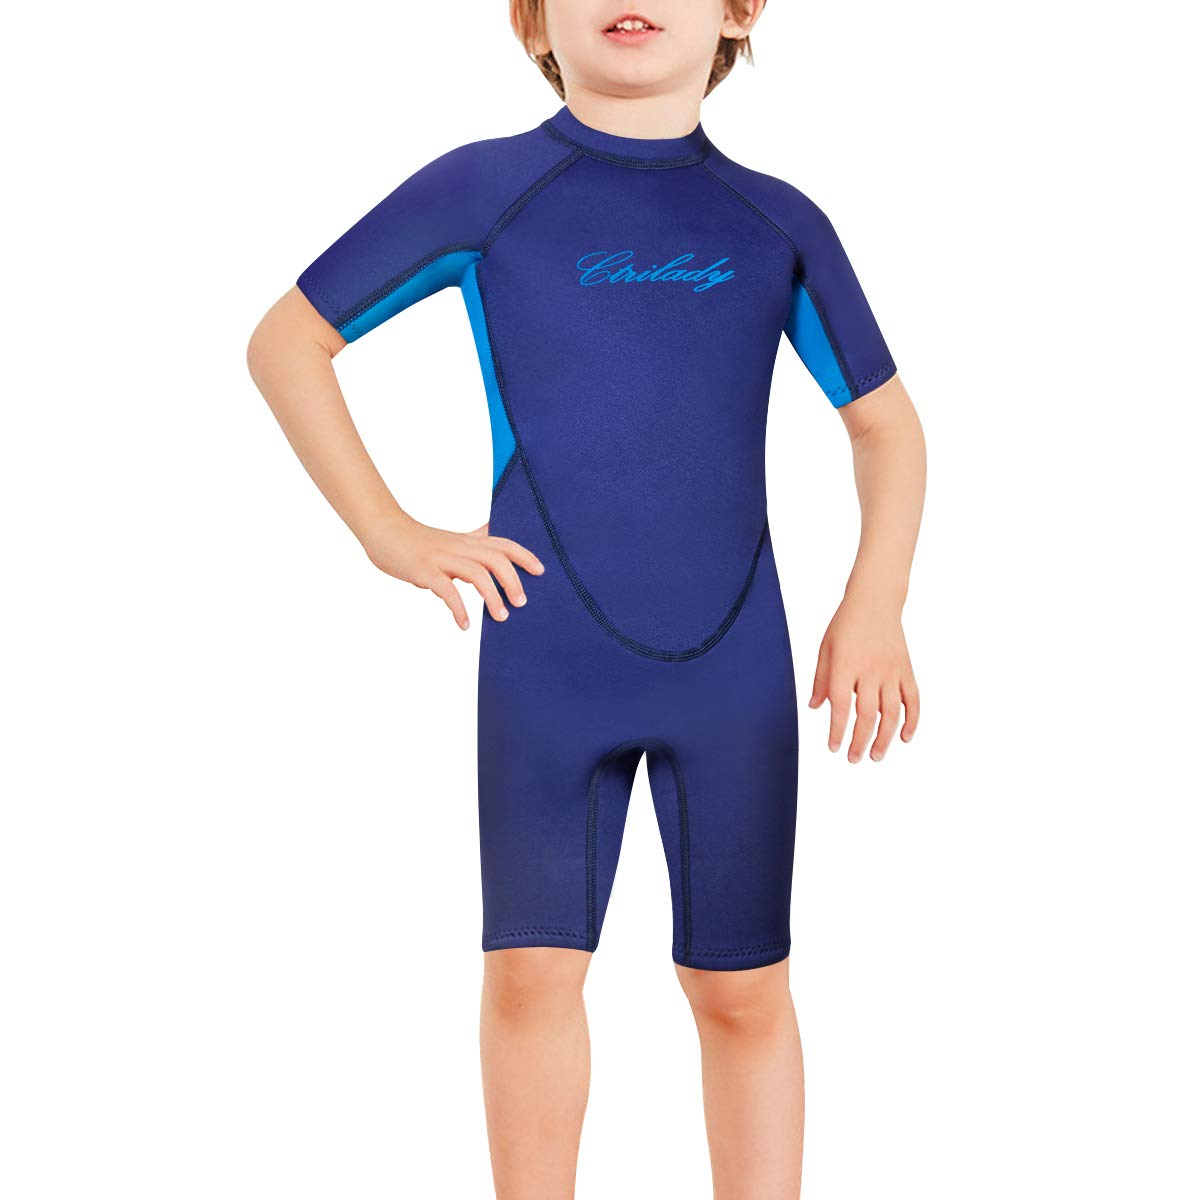 CtriLady Kids Youth Neoprene Wetsuit Keep Warm Swimsuit for Swimming Surfing Snorkeling Diving Water Sports(Blue,L) by CtriLady